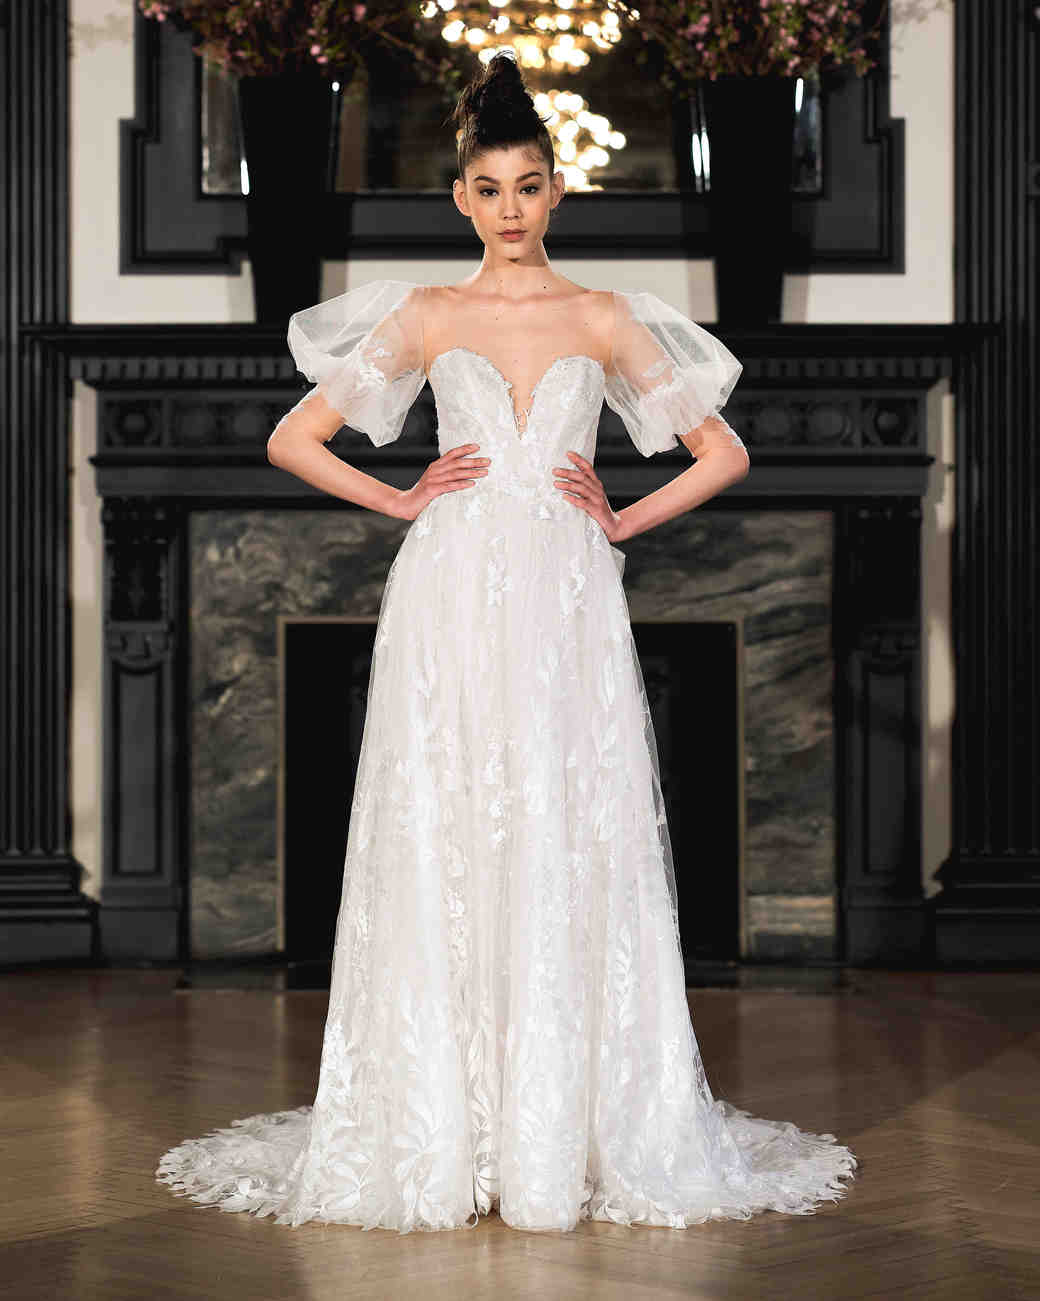 images Ramón Herrerías 2019 Ellas' Wedding Dress Collection